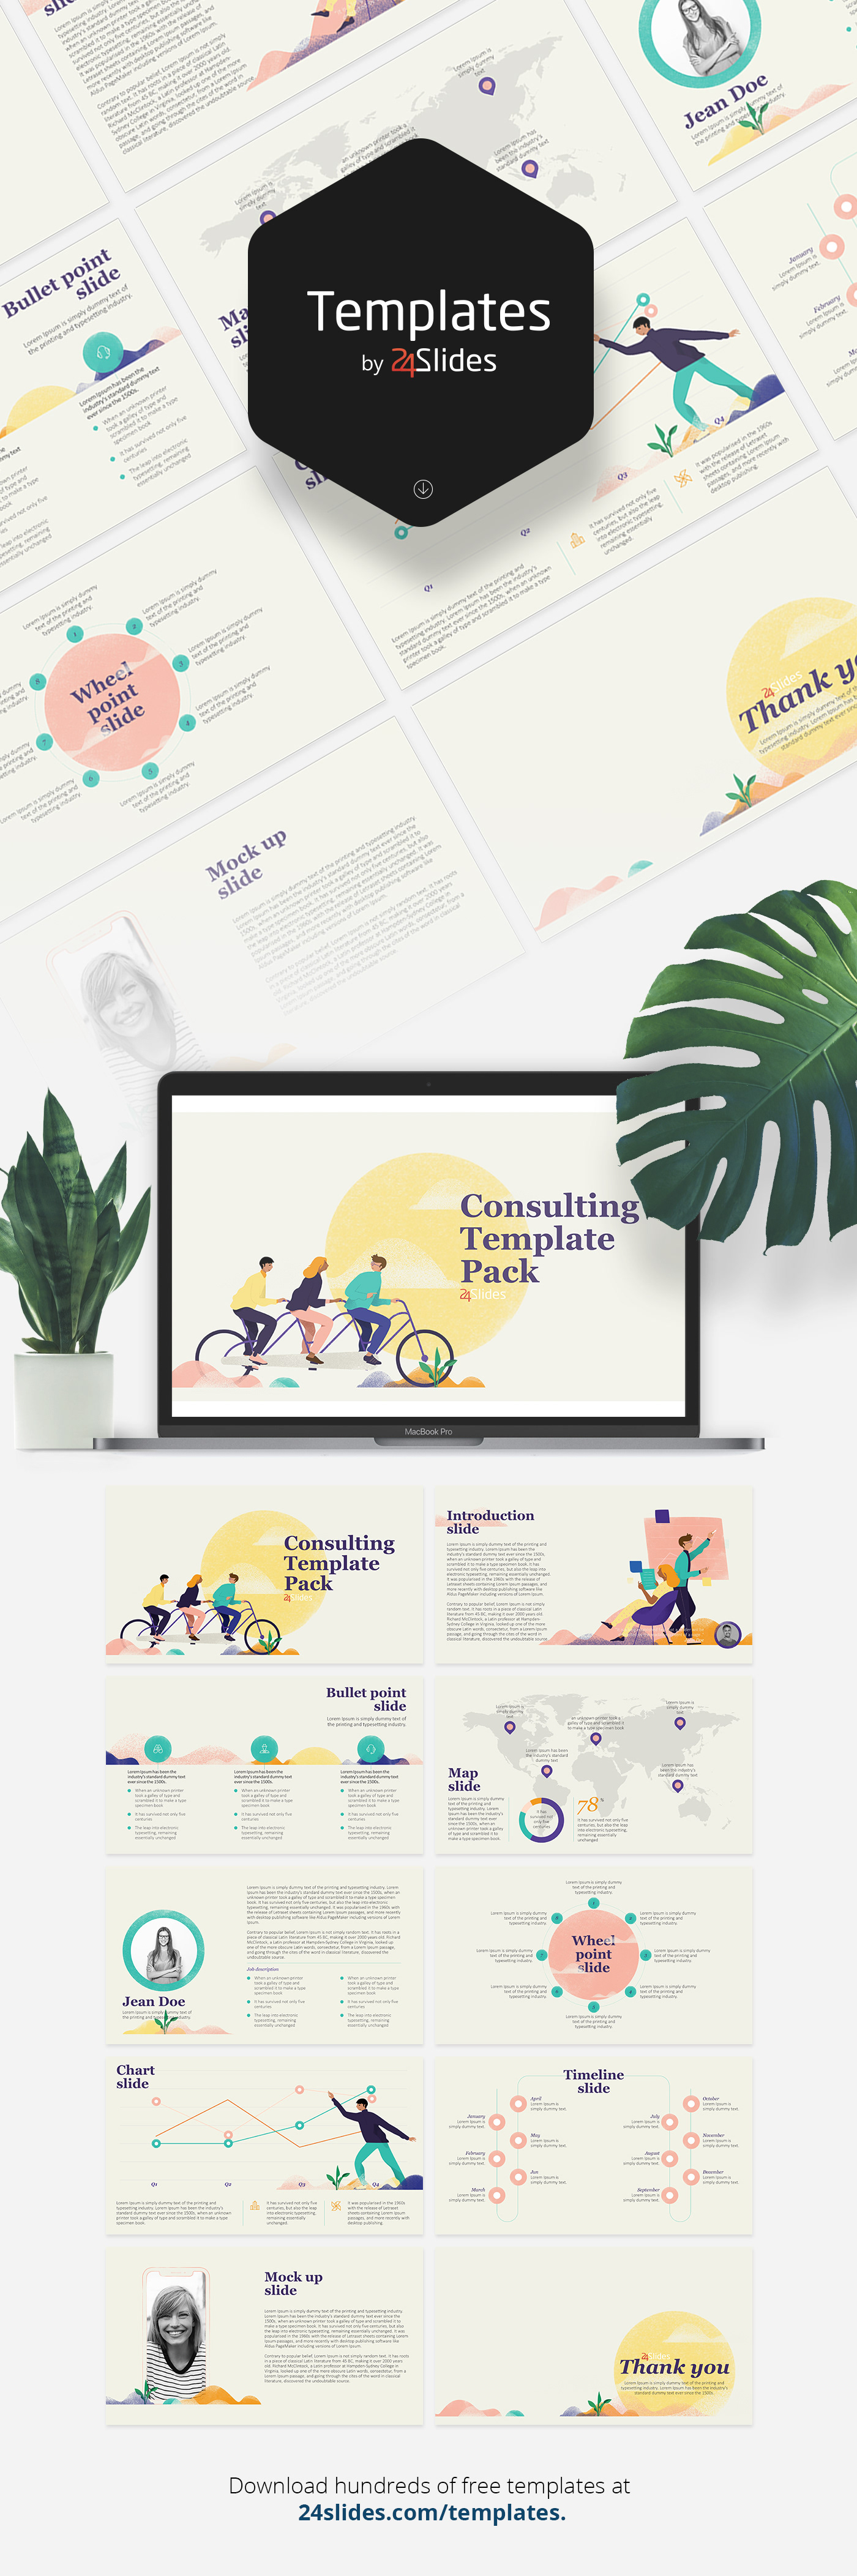 Soft Consulting Template Pack Free Download On Behance